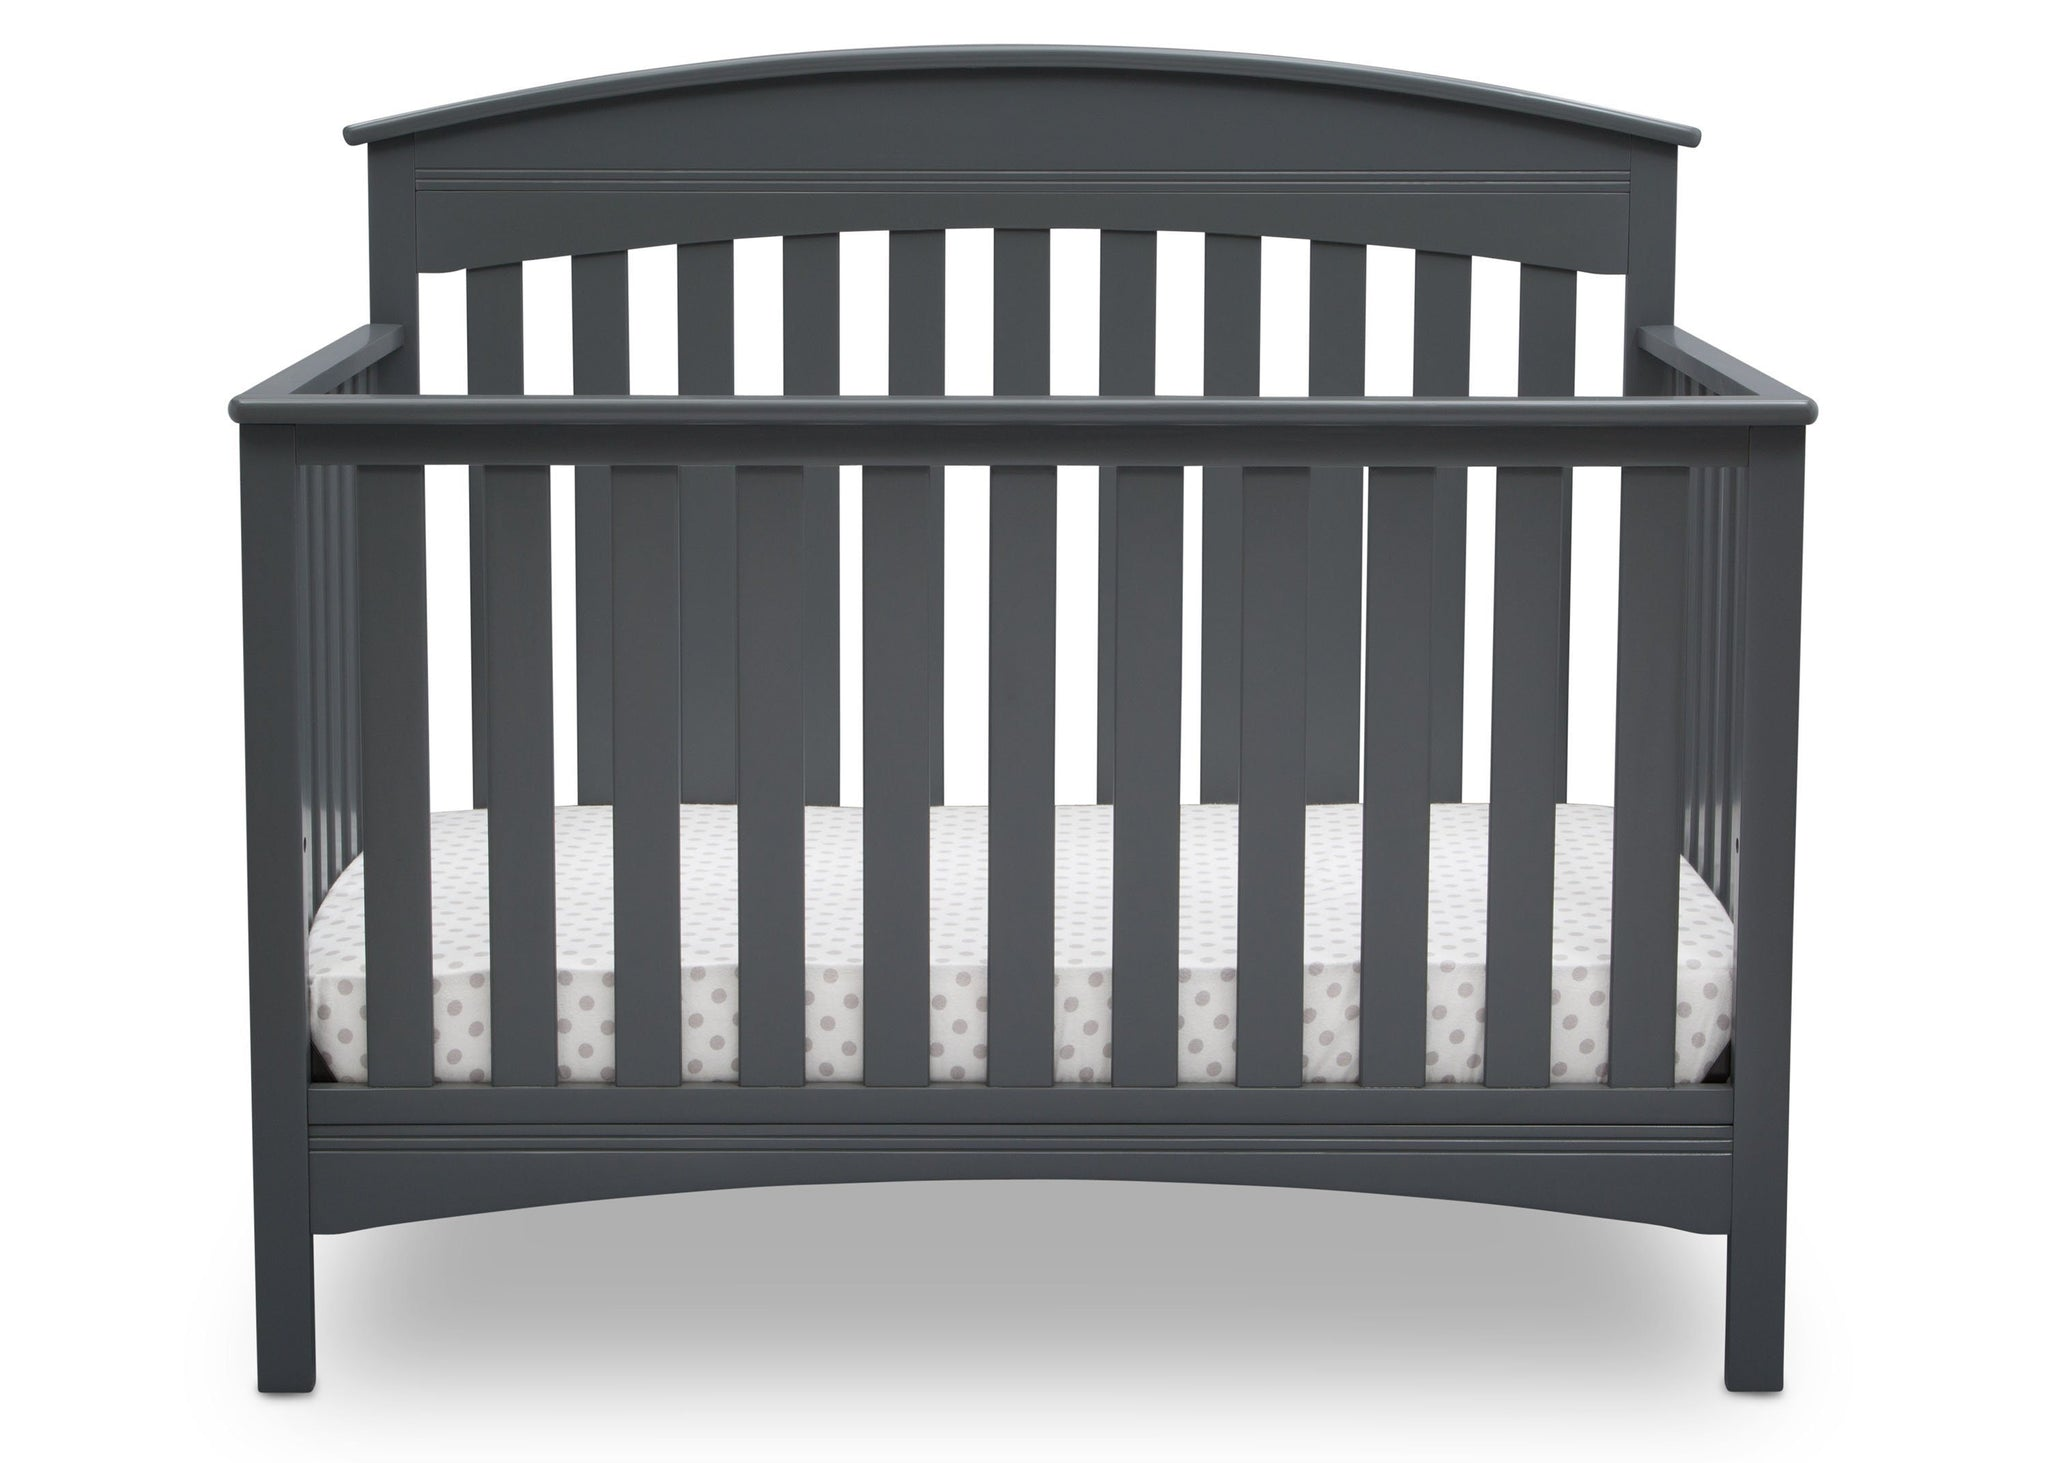 Delta Children Charcoal Grey (029) Bennington Elite Arched 4-in-1 Convertible Crib, Crib Front, a2a